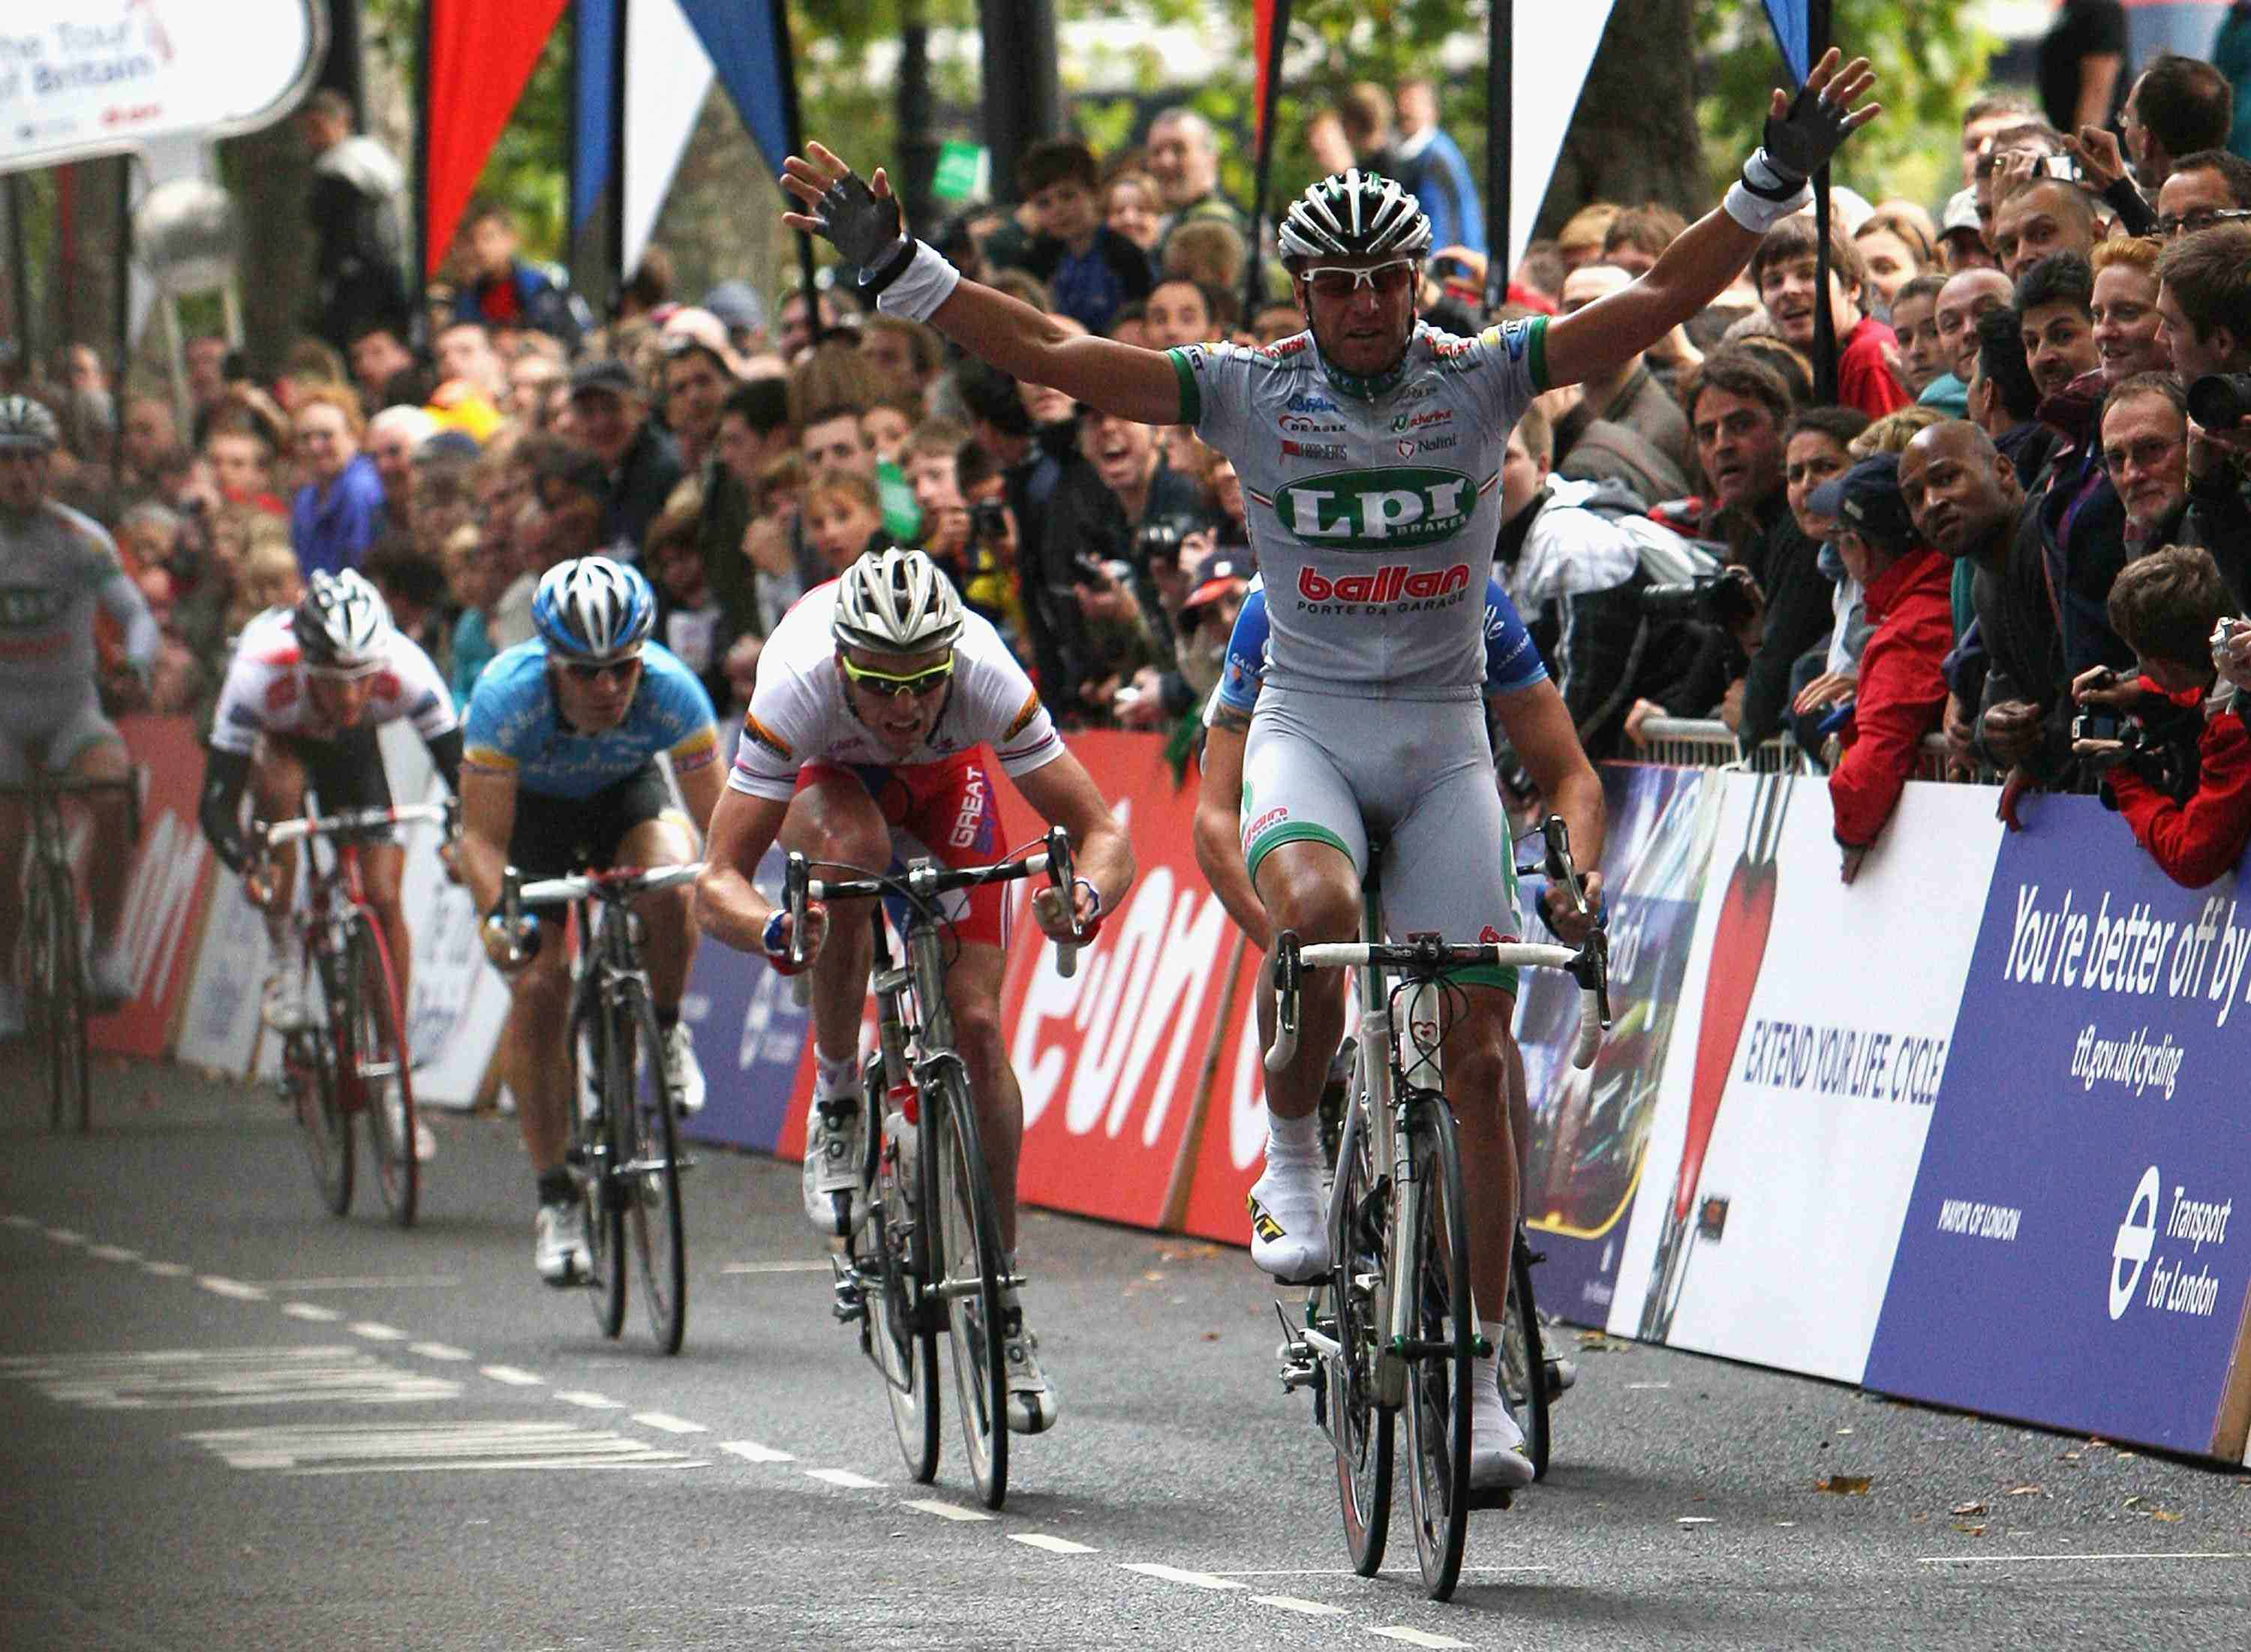 Italian sprinter Alessandro Petacchi made his triumphant return in the 2008 Tour of Britain, winning three stages.